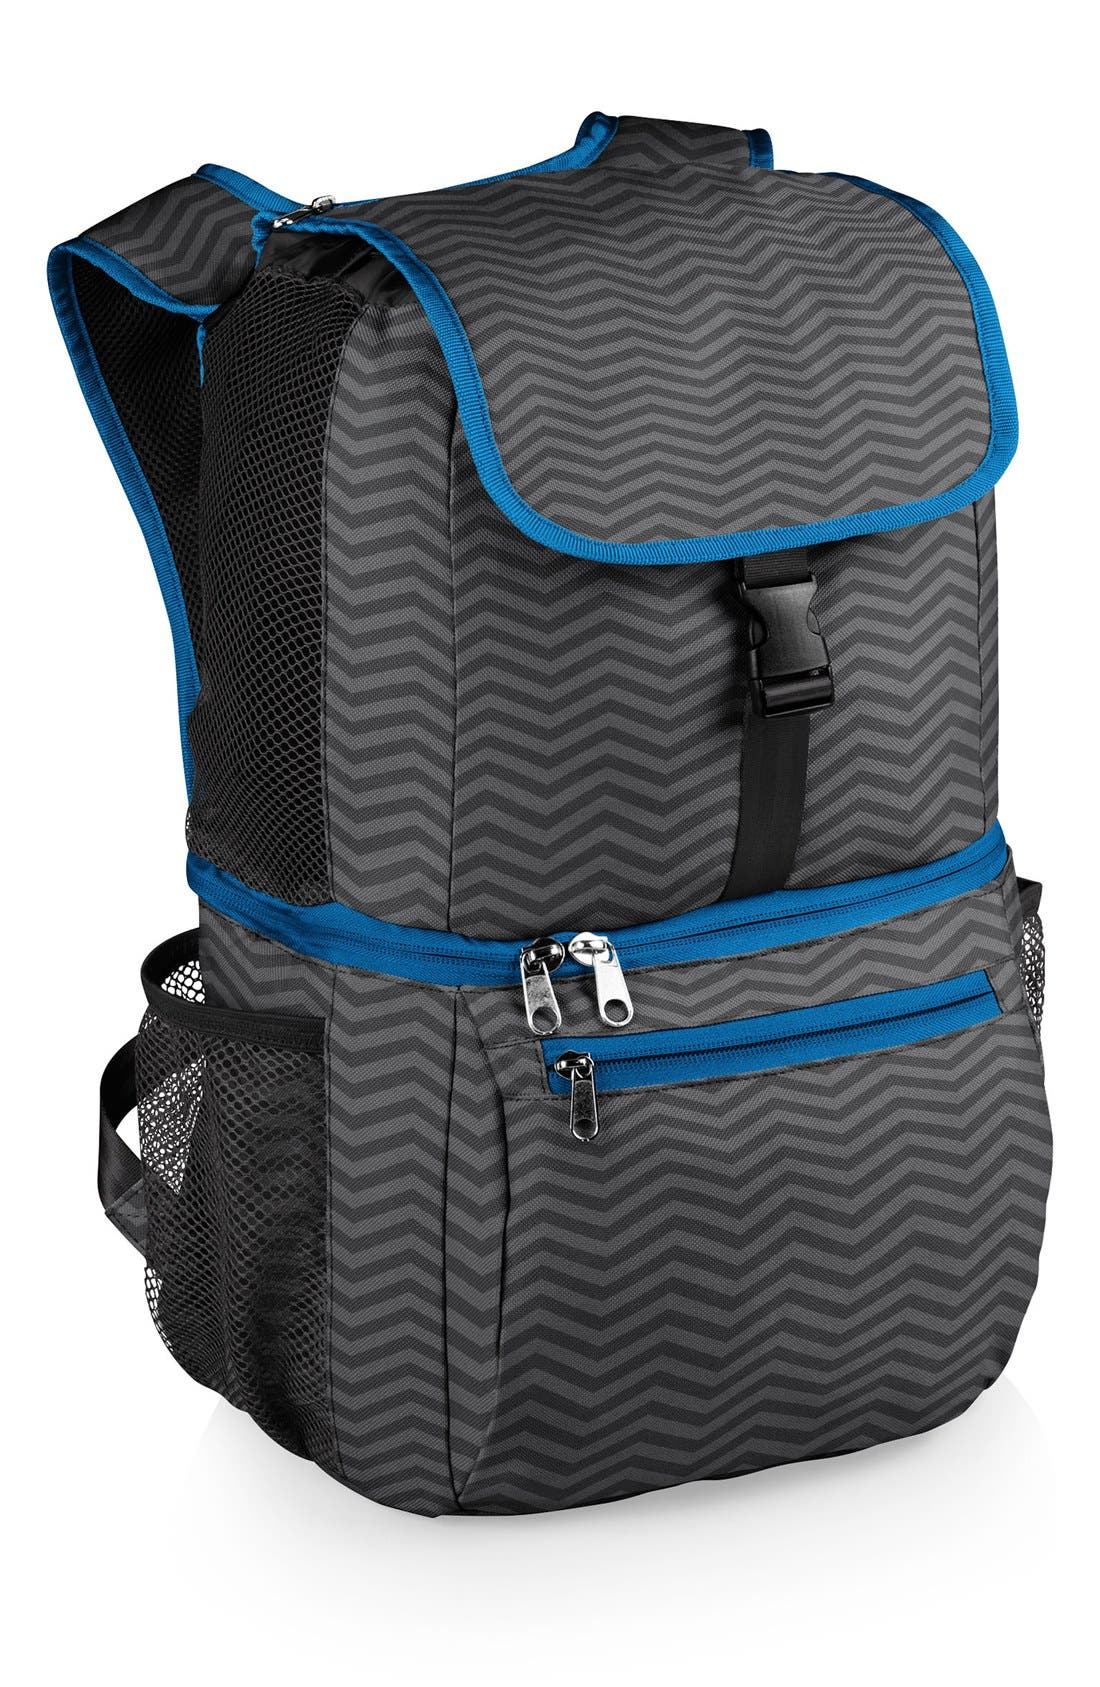 Main Image - Picnic Time 'Pismo' Insulated Cooler Backpack